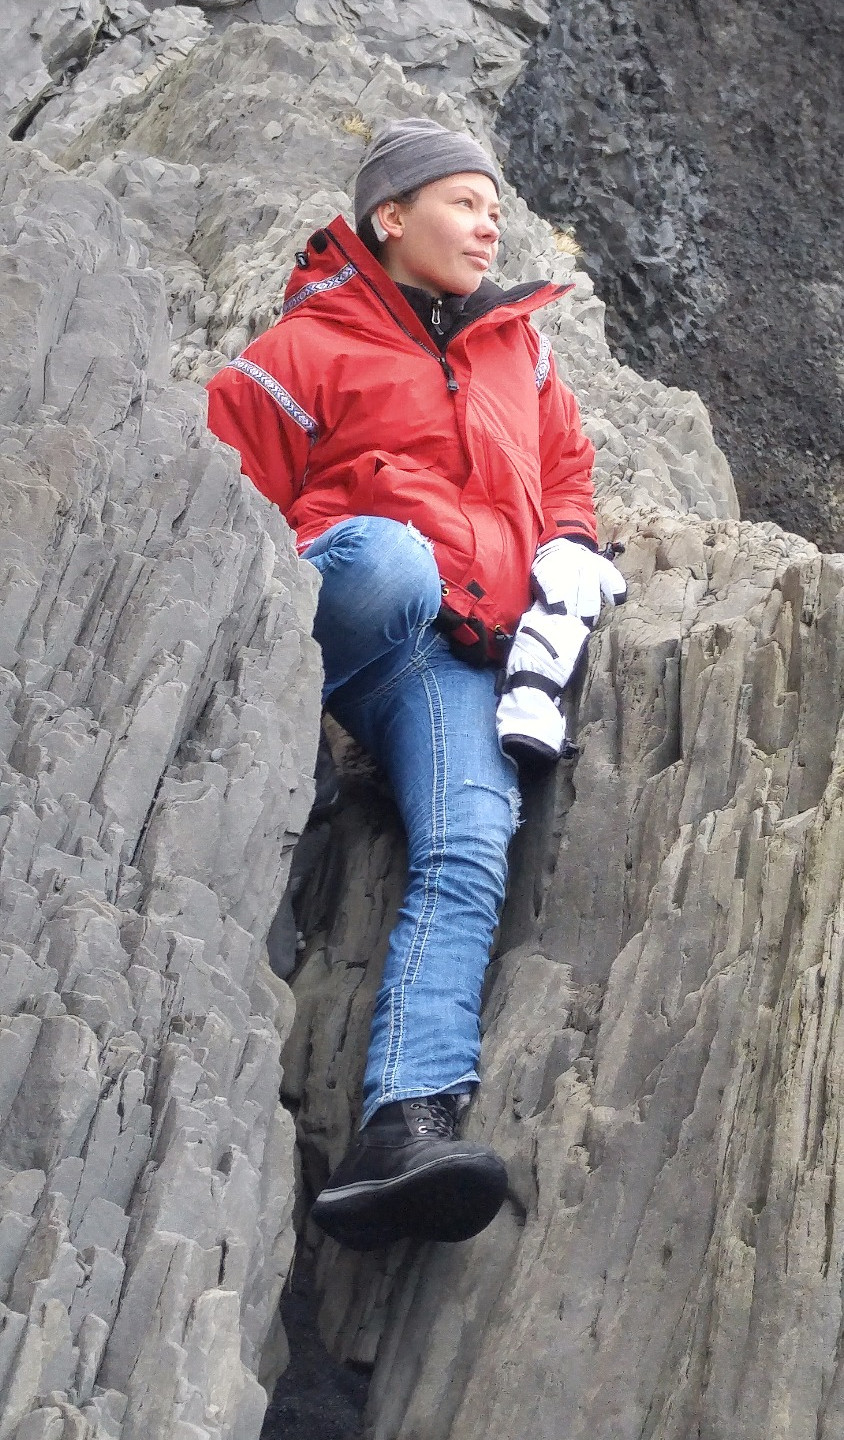 Climbing with cochlear implants